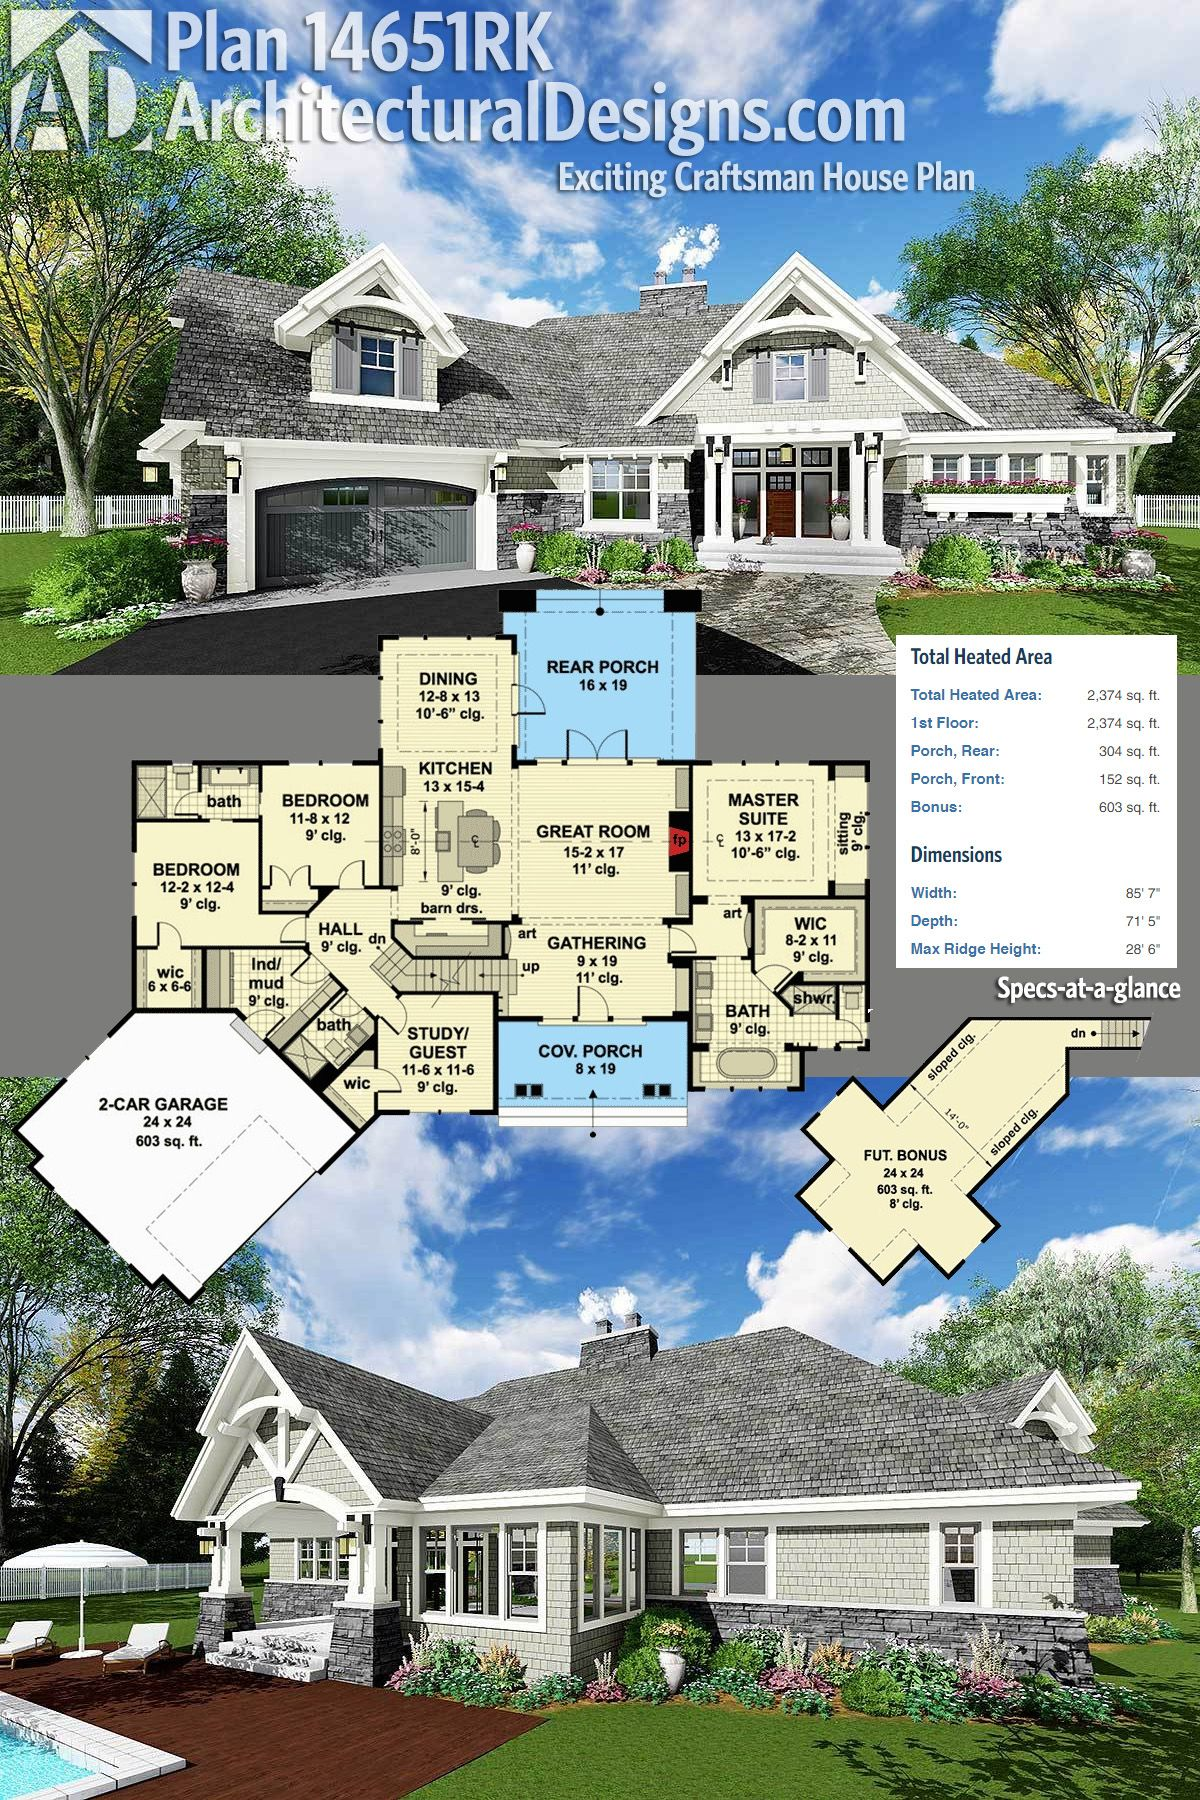 Architectural Designs Craftsman House Plan 14651RK has